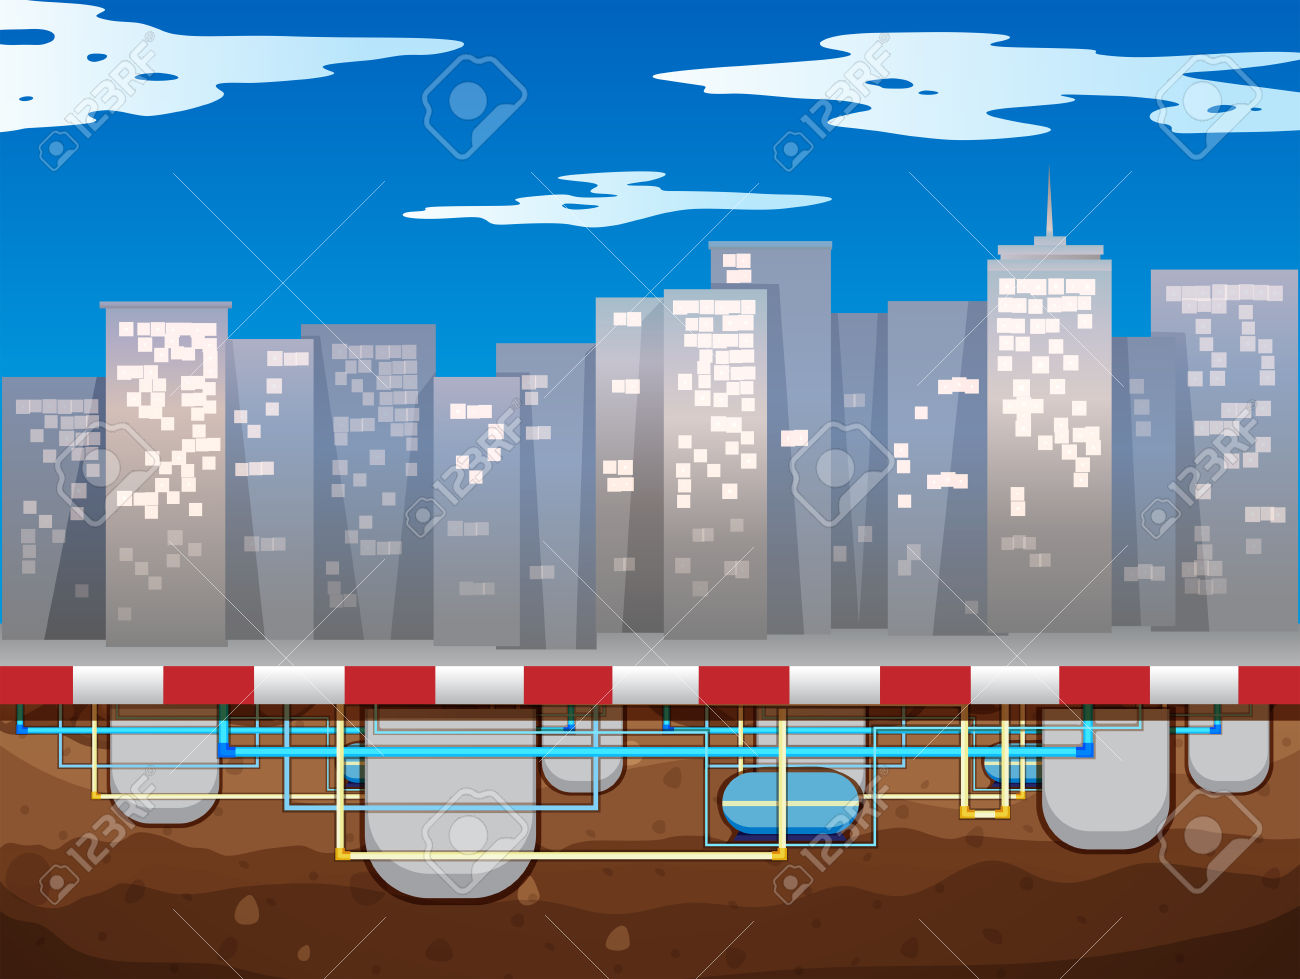 Water Pipe Underground Of The City Illustration Royalty Free.